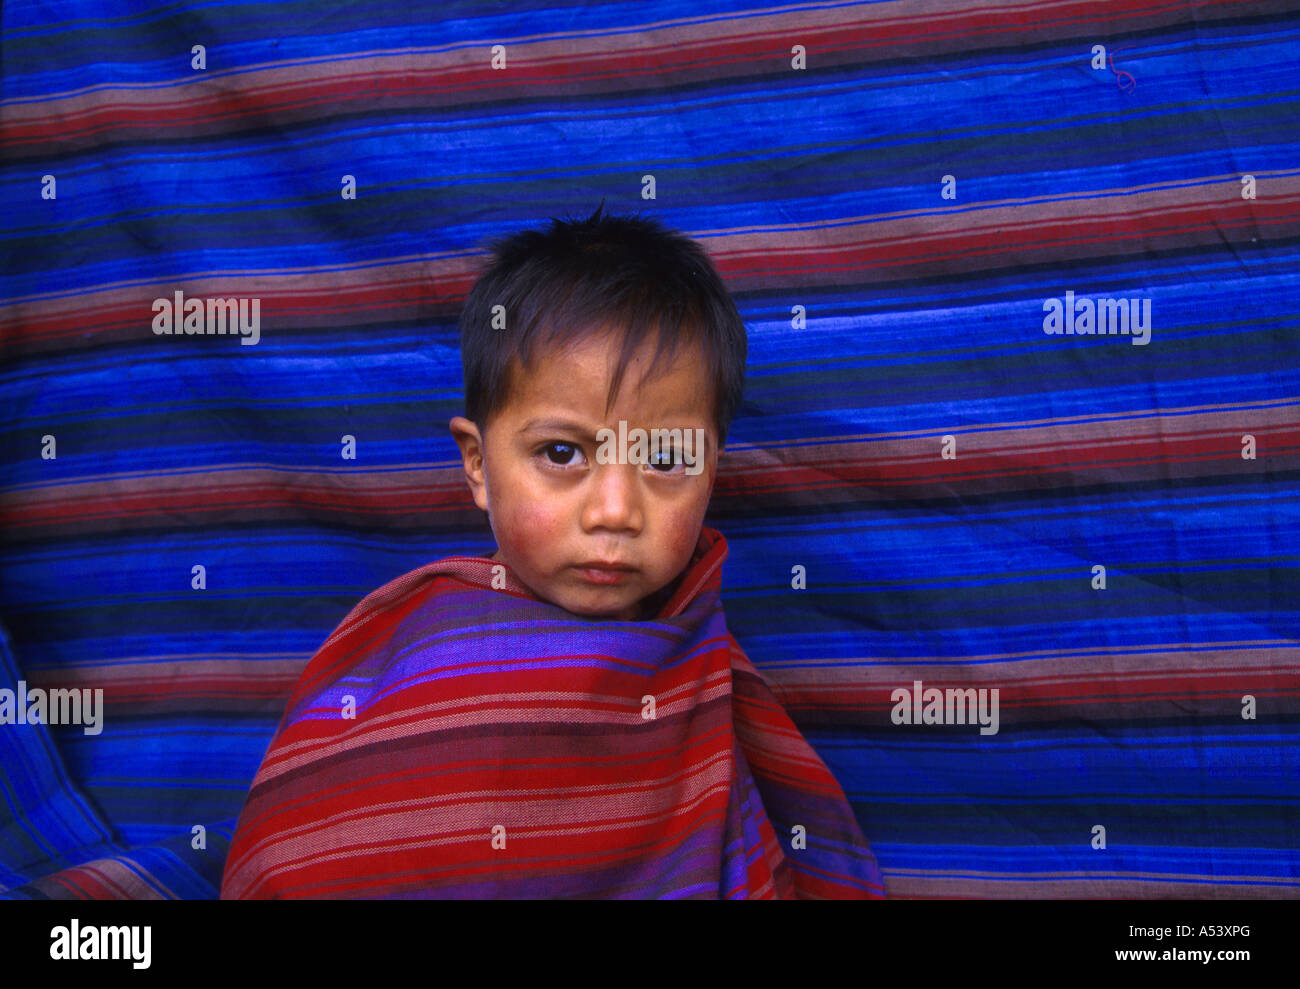 Painet ha2289 5111 guatemala children boy quetzaltenango posed cloth woven by father country developing nation less - Stock Image